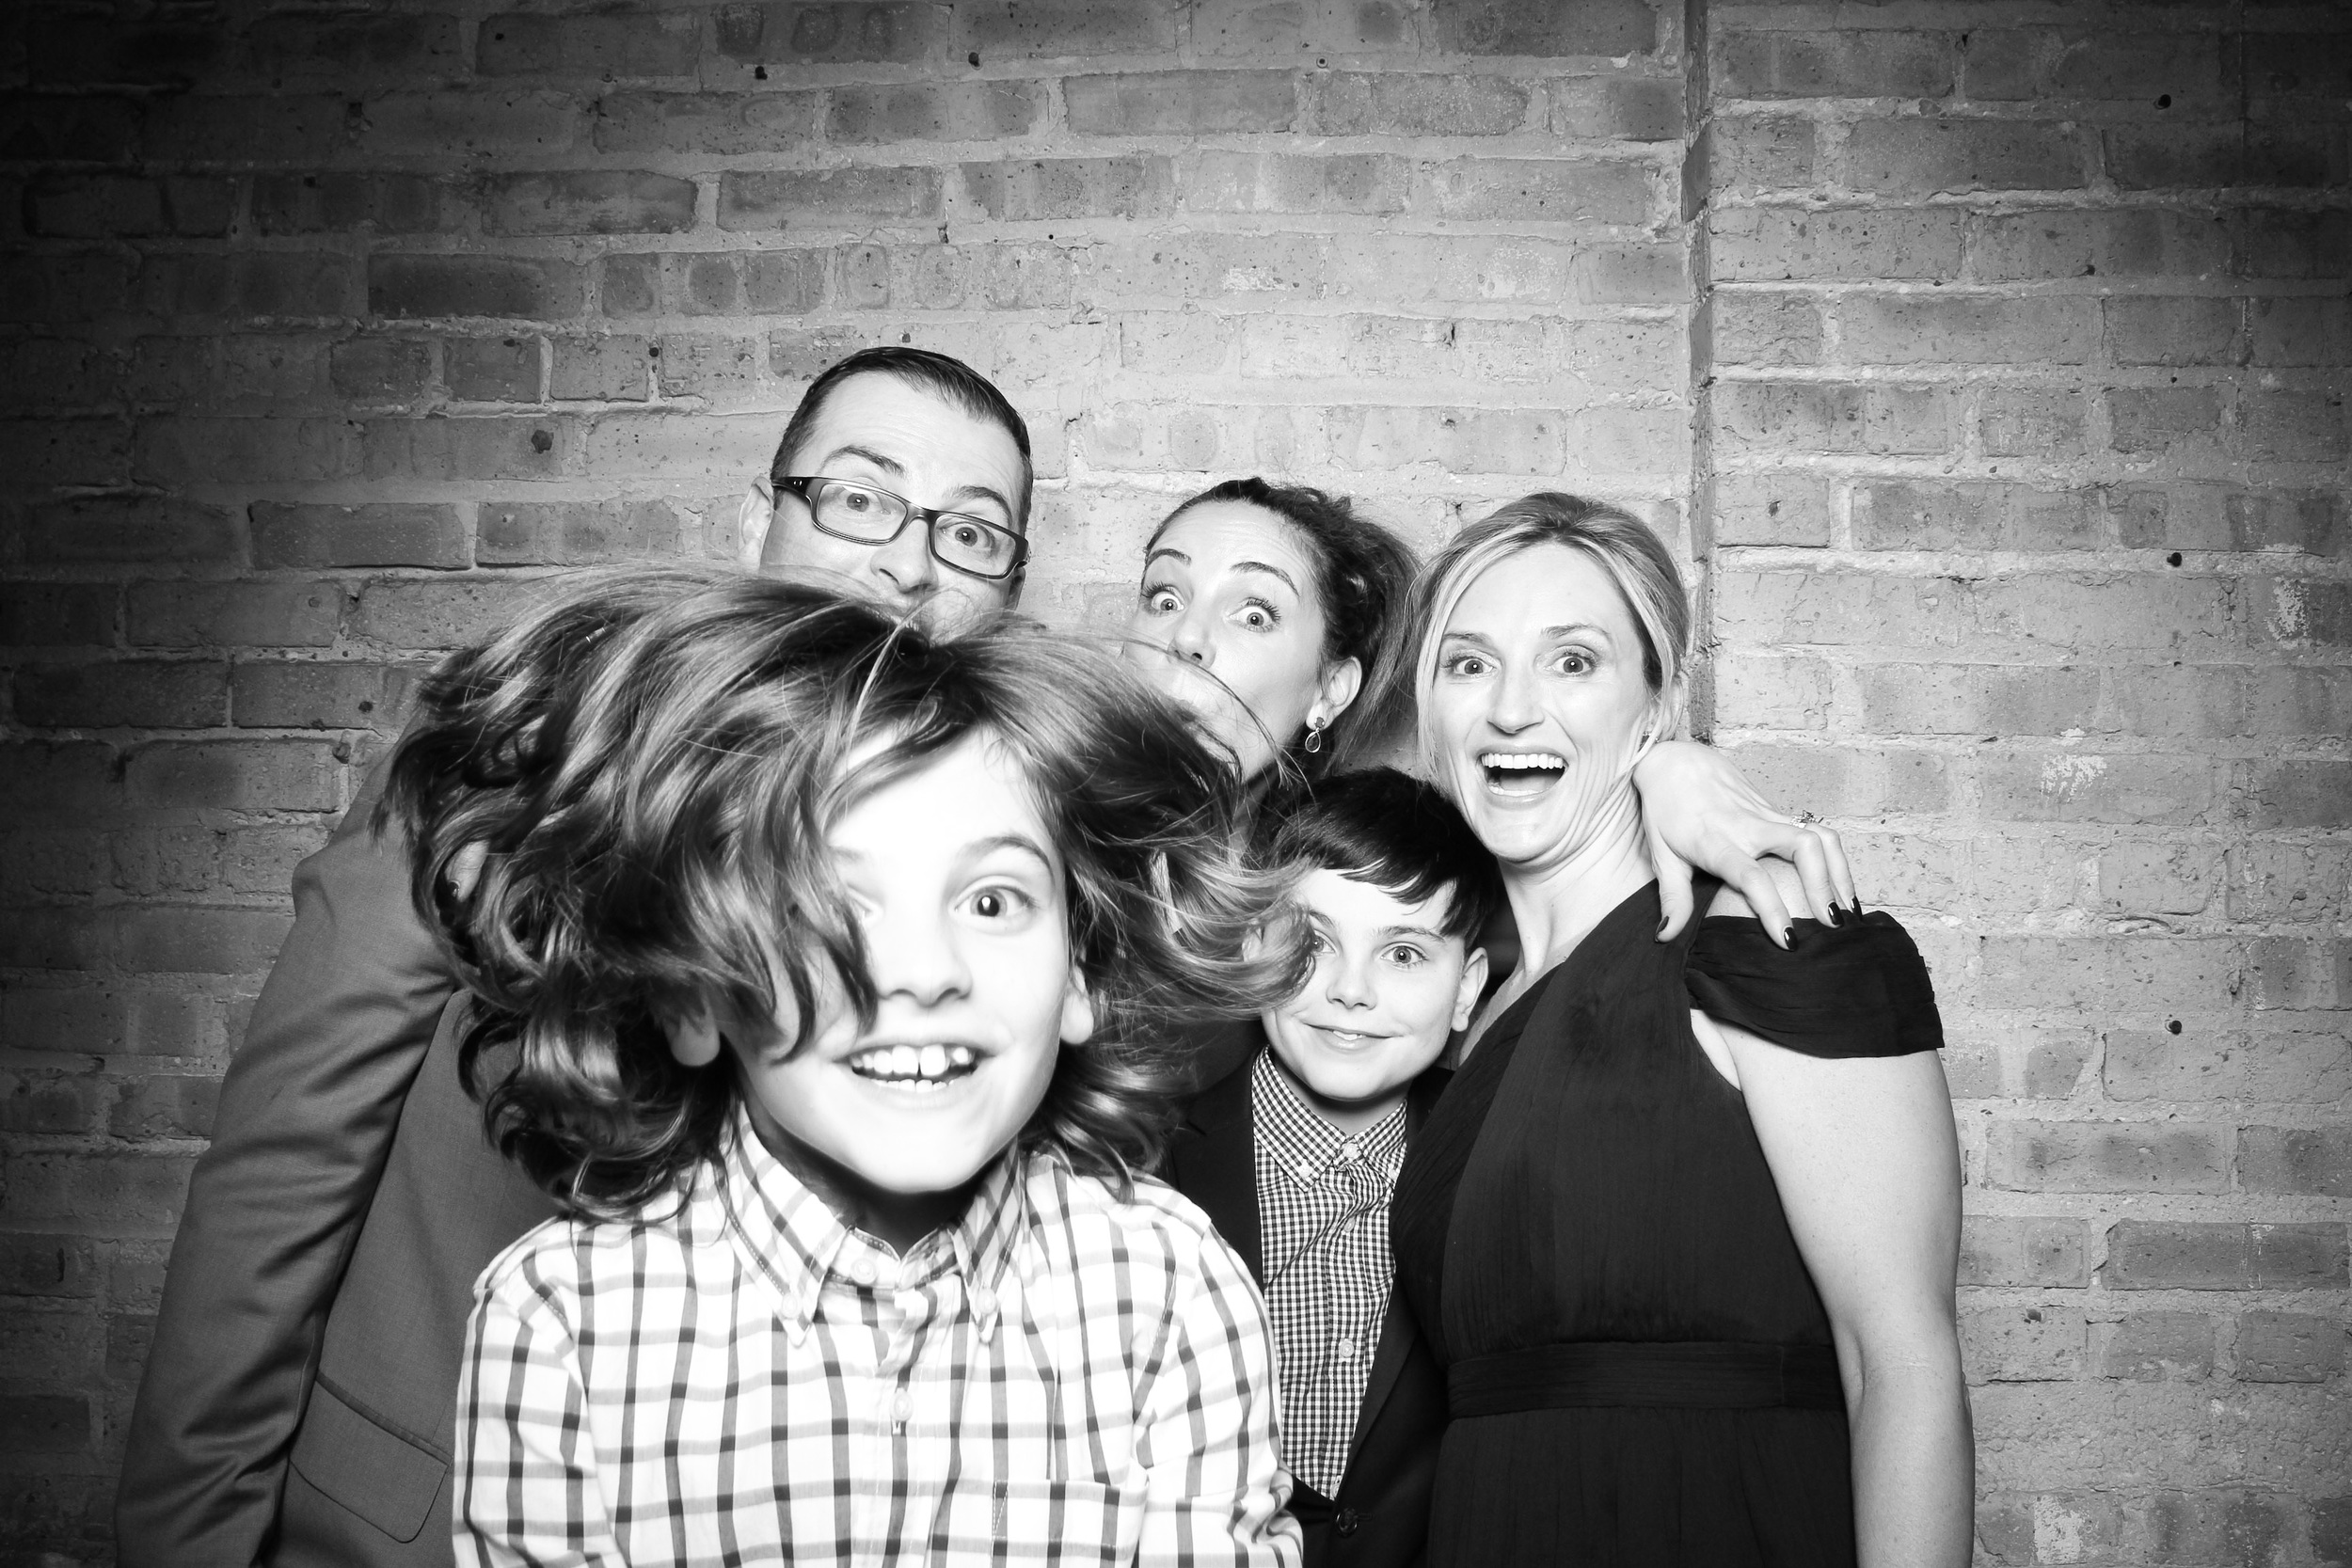 Photo Bomb Hair Model Shot! The Family looks impressed!